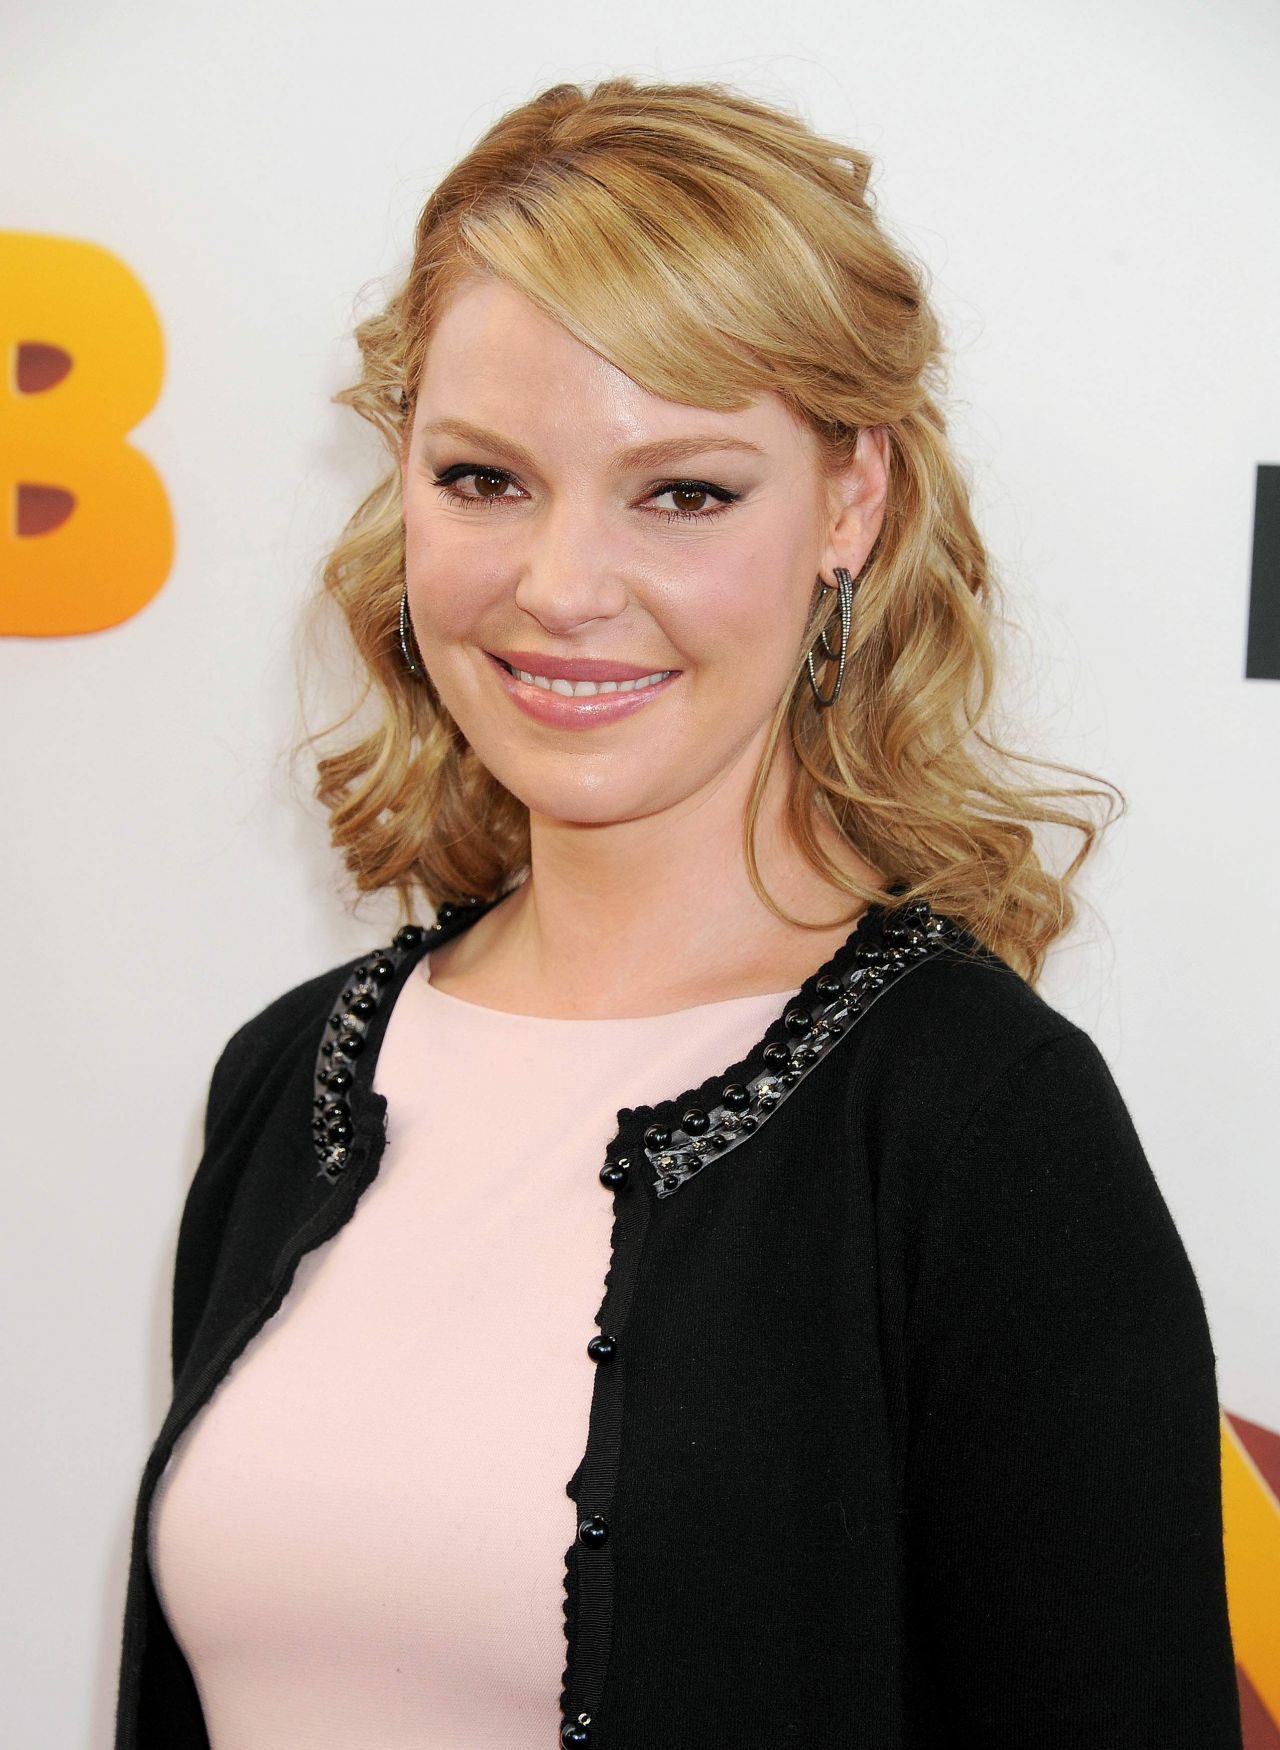 Katherine Heigl - THE NUT JOB Movie World Premiere